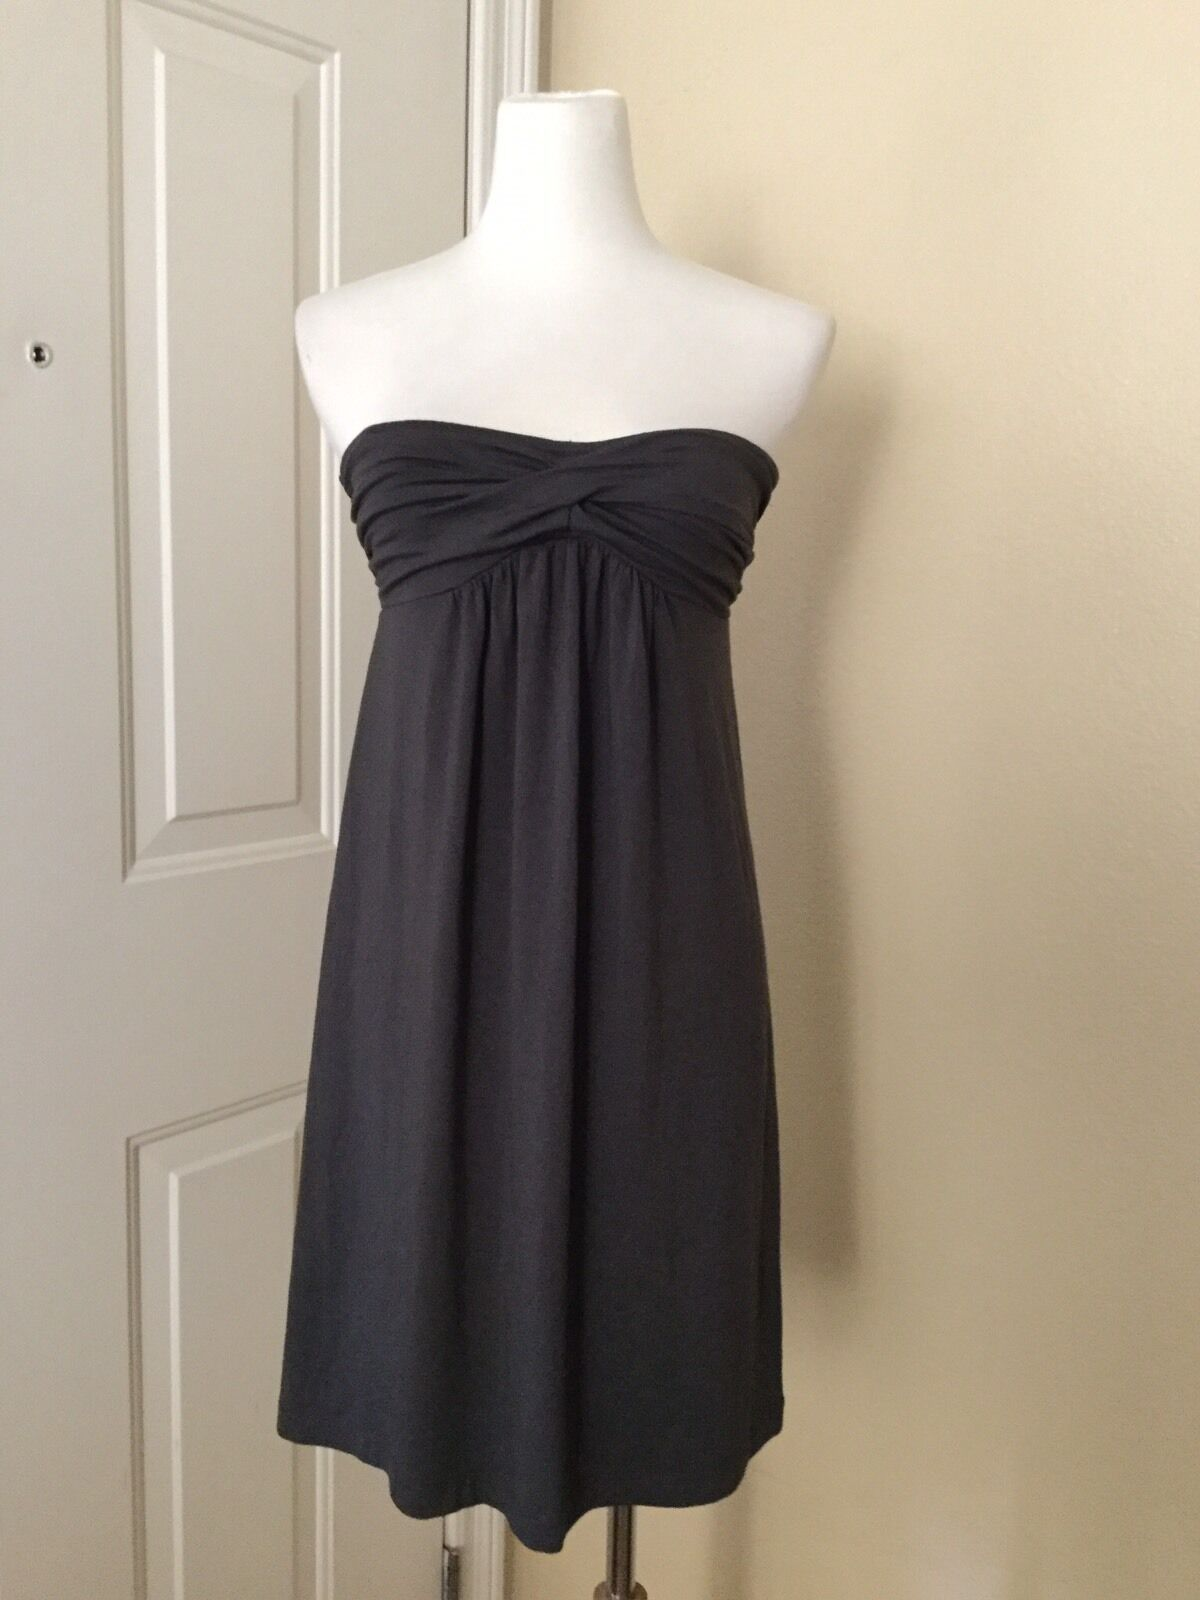 NWT J.CREW Dressy Jersey Strapless Dress in Gray, Size Small image 5